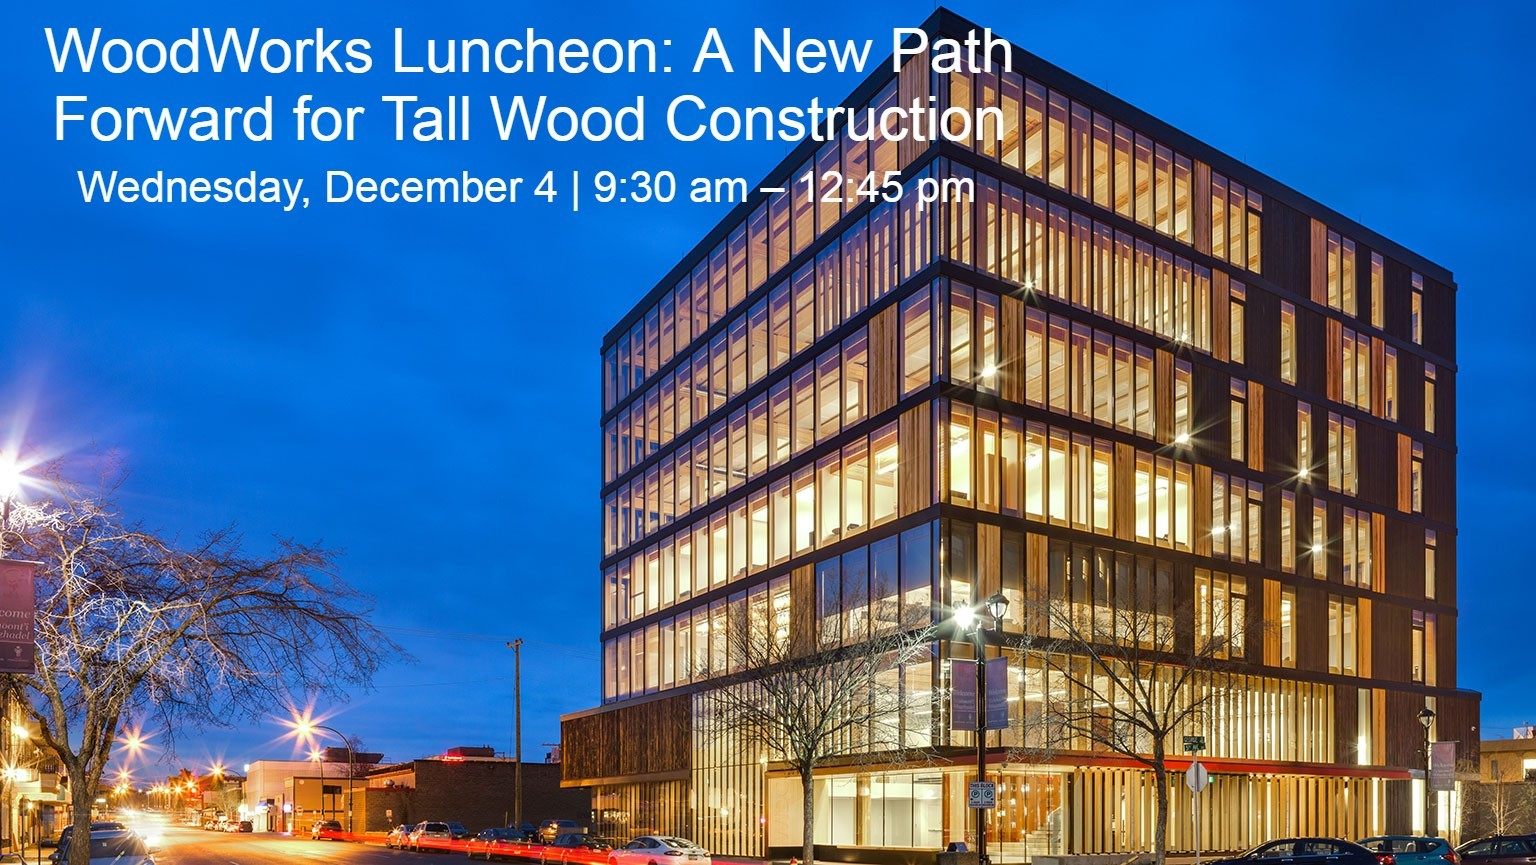 WoodWorks Luncheon: A New Path Forward for Tall Wood Construction